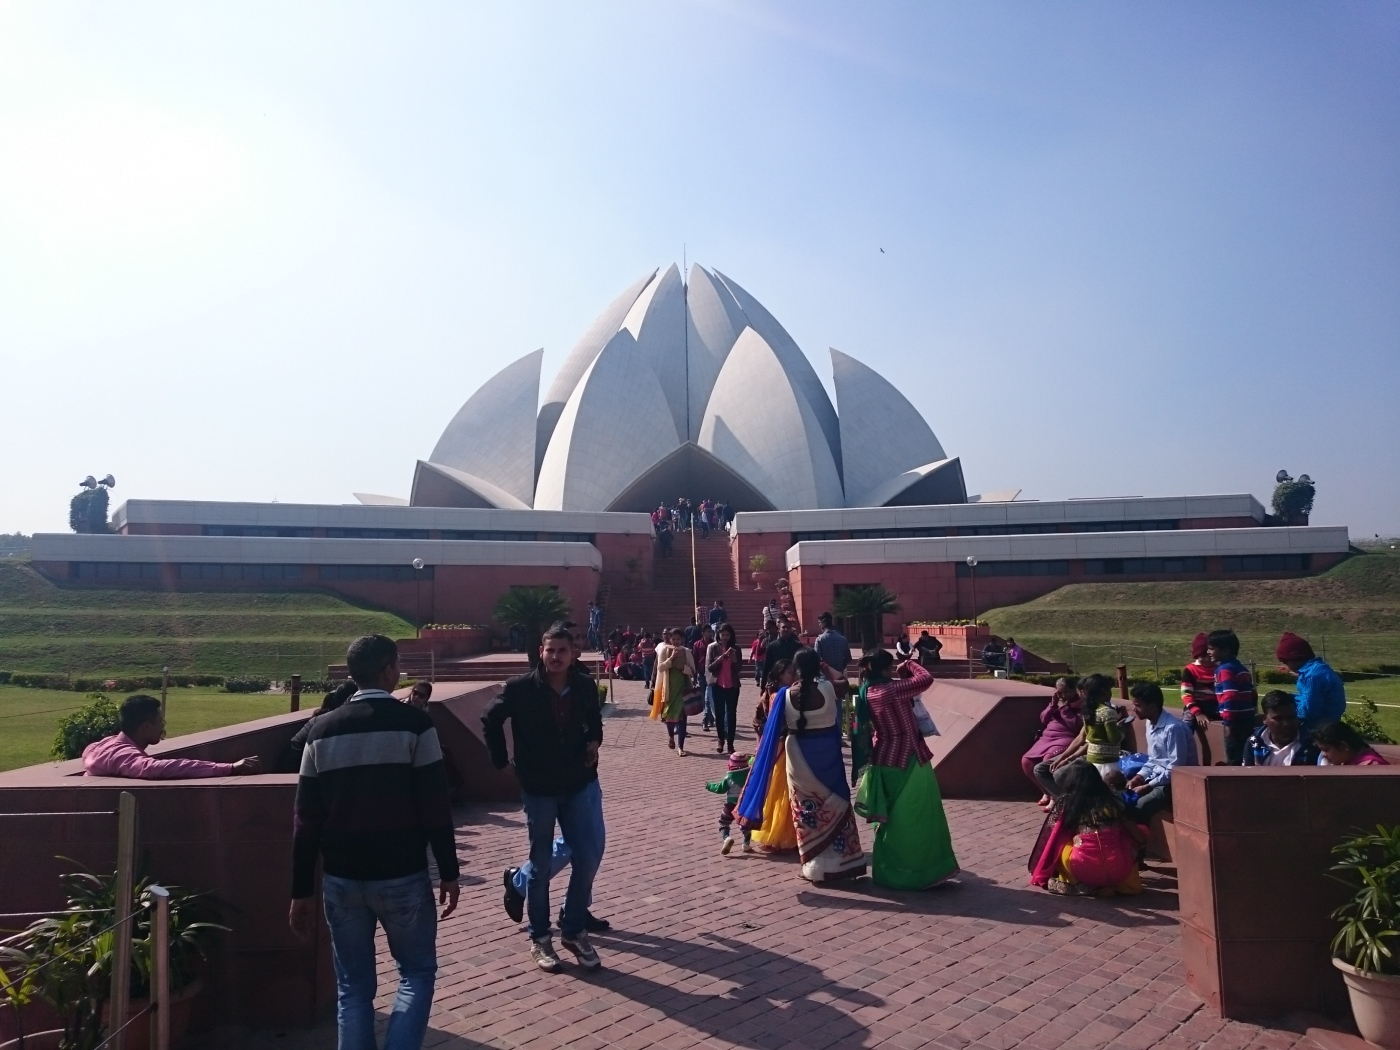 Baha'i (Lotus) Temple